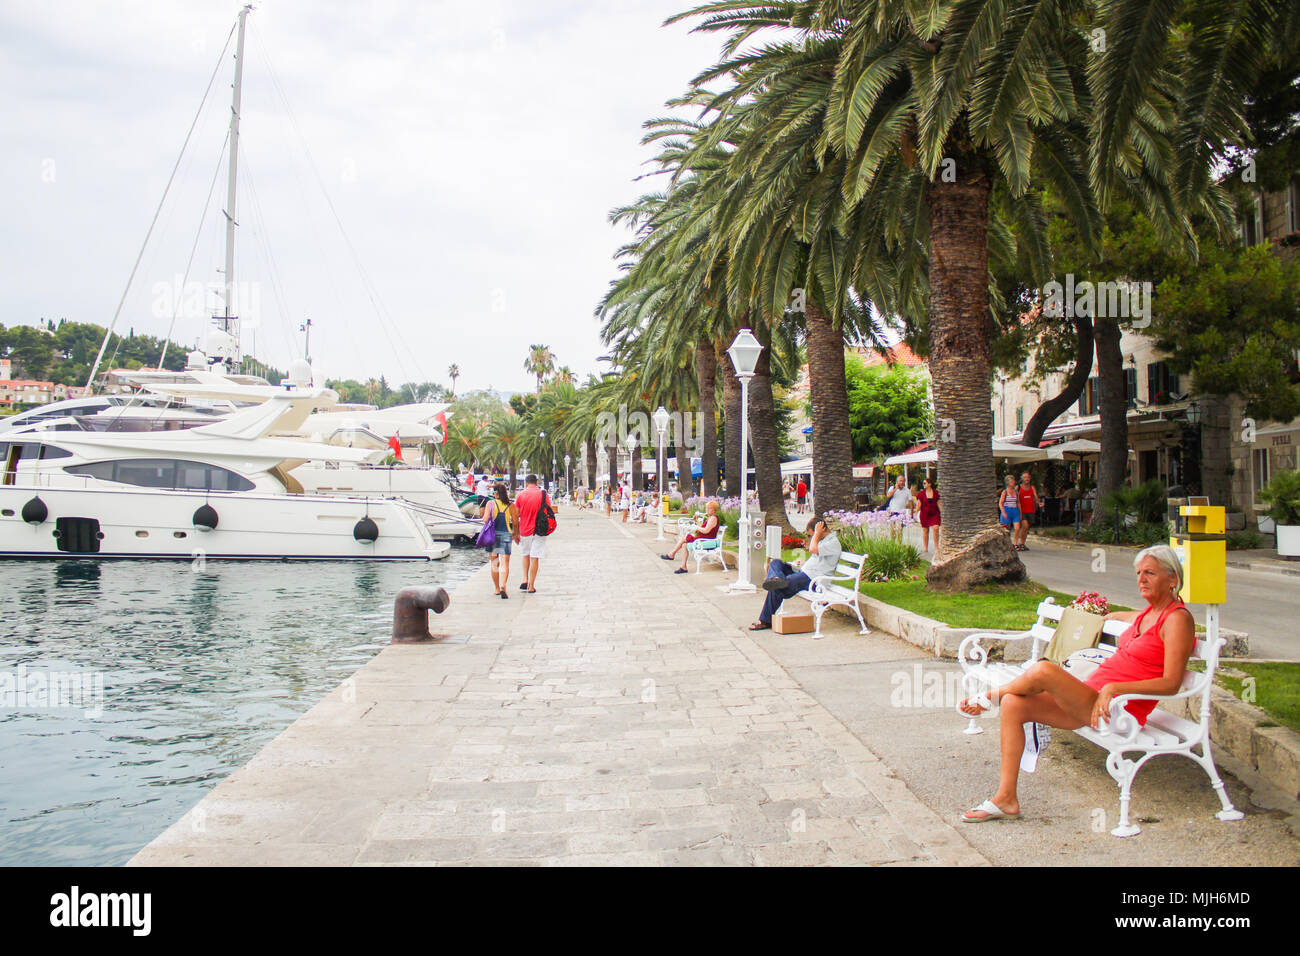 tourists on promenade, harbor cavtat, croatia Stock Photo